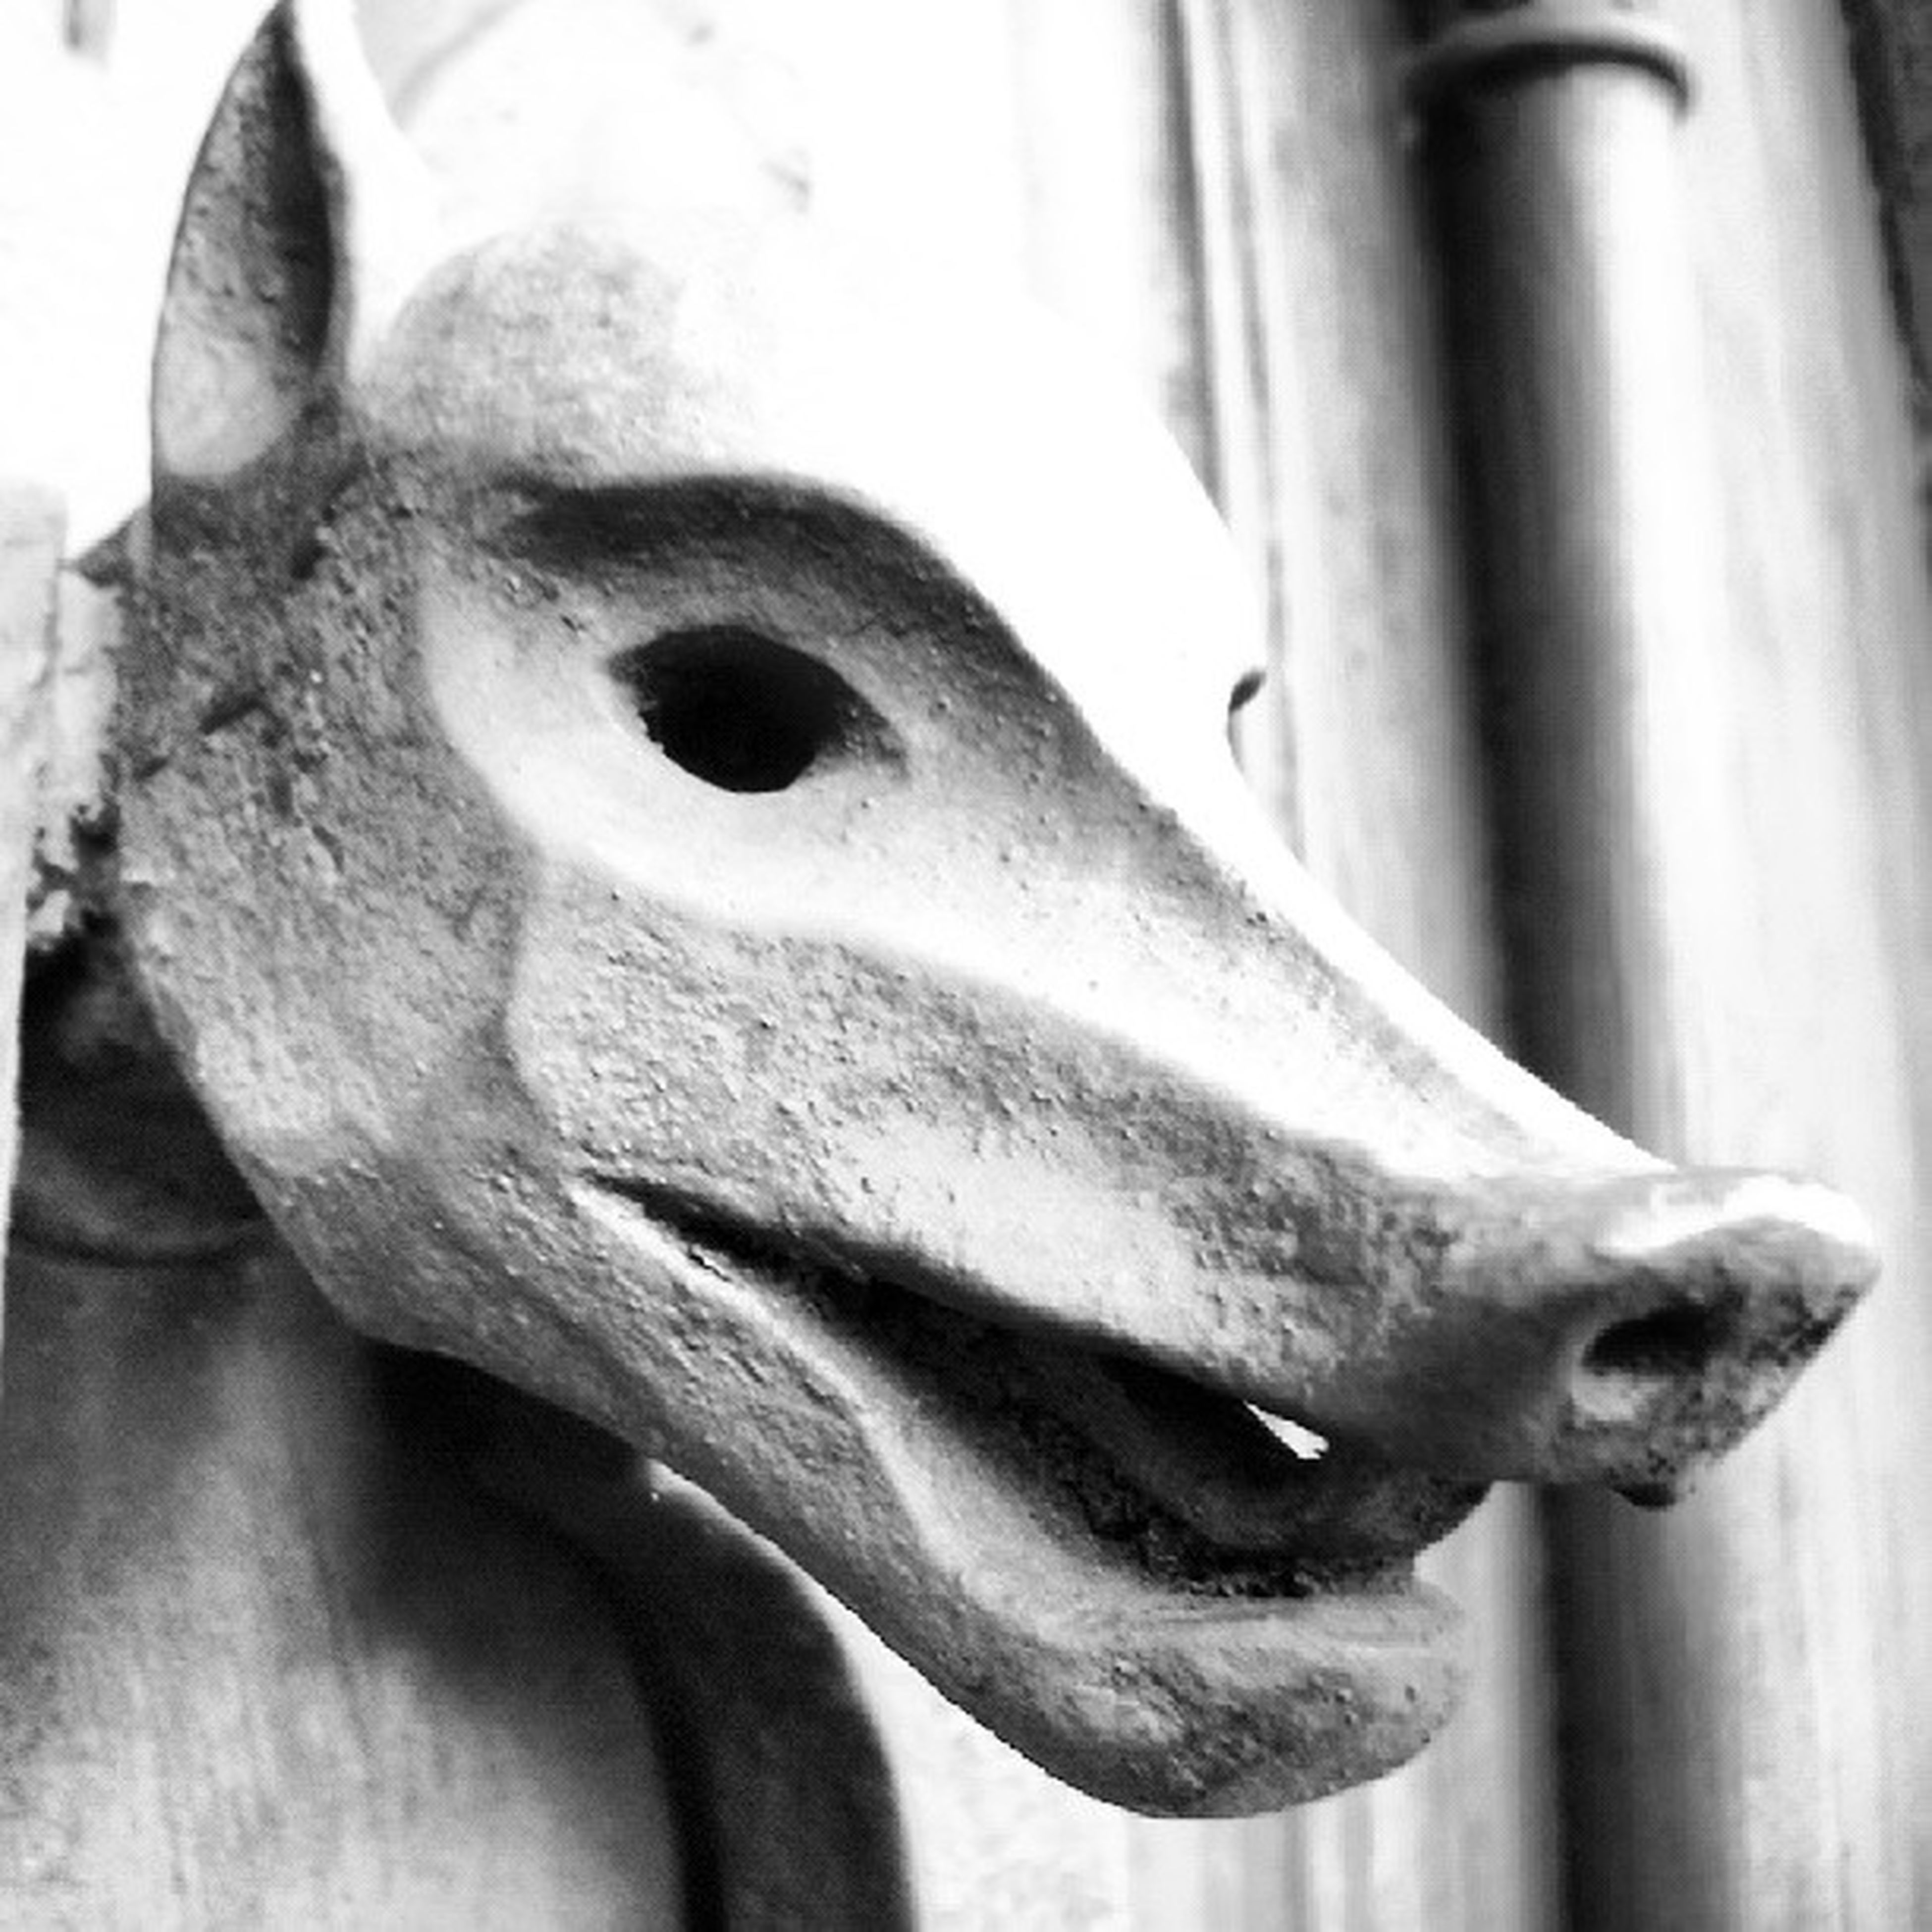 close-up, sculpture, statue, art and craft, focus on foreground, art, human representation, creativity, part of, animal representation, horse, no people, day, animal head, outdoors, cropped, animal body part, carving - craft product